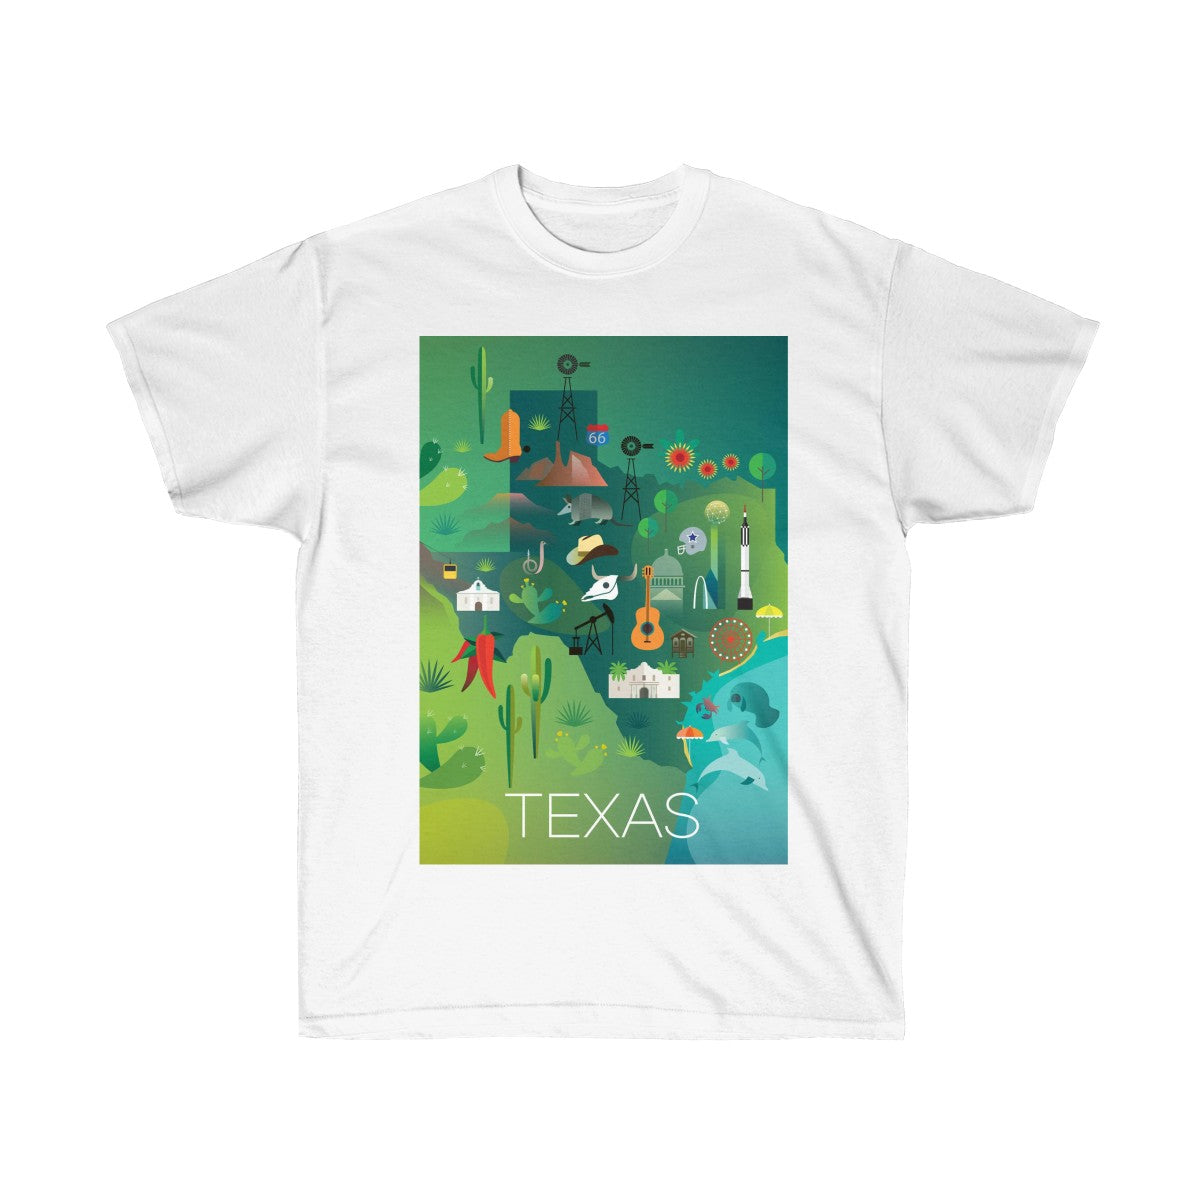 TEXAS UNISEX ULTRA COTTON TEE